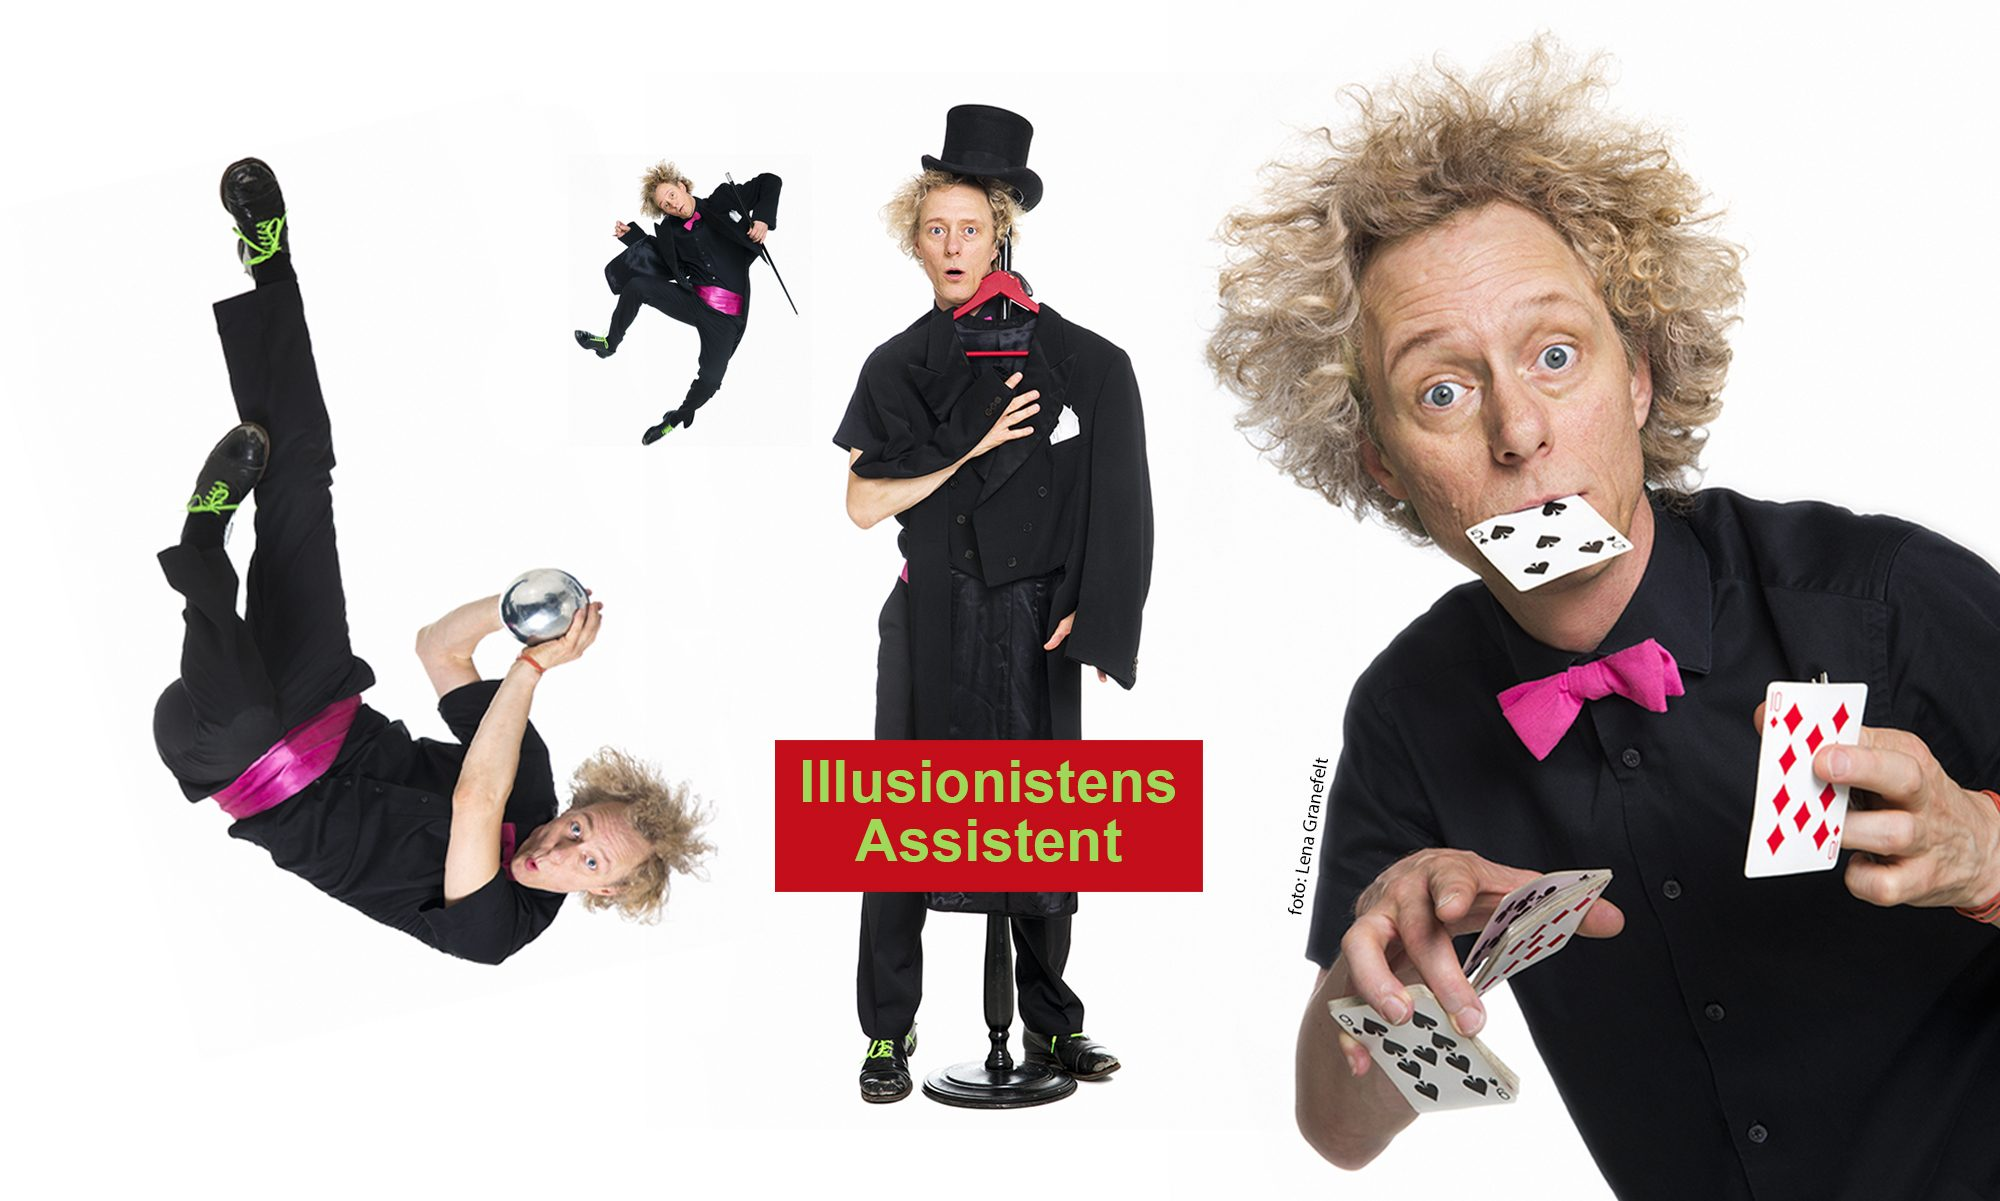 Illusionistens Assistent